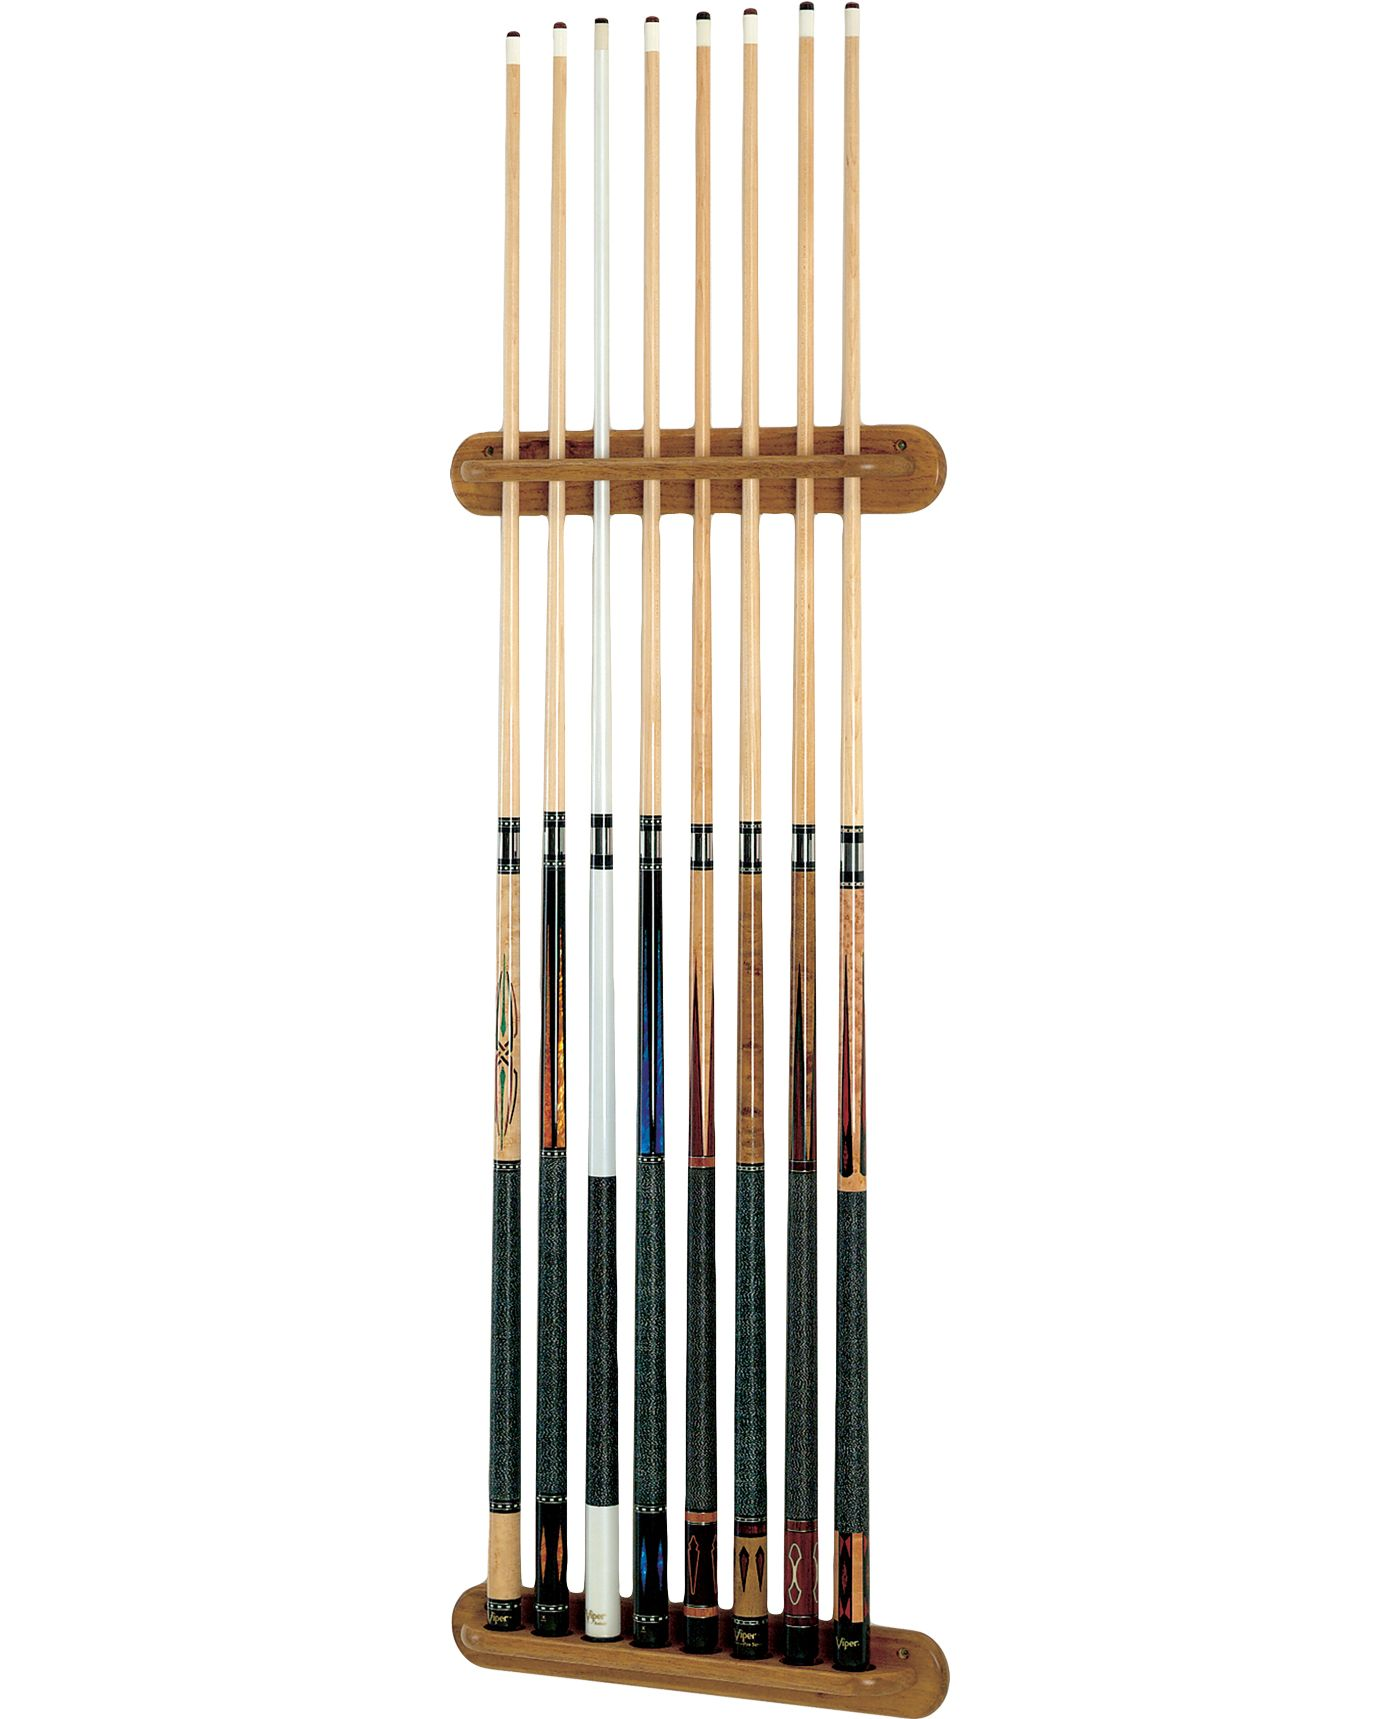 Viper Traditional Eight Cue Oak Wall Cue Rack